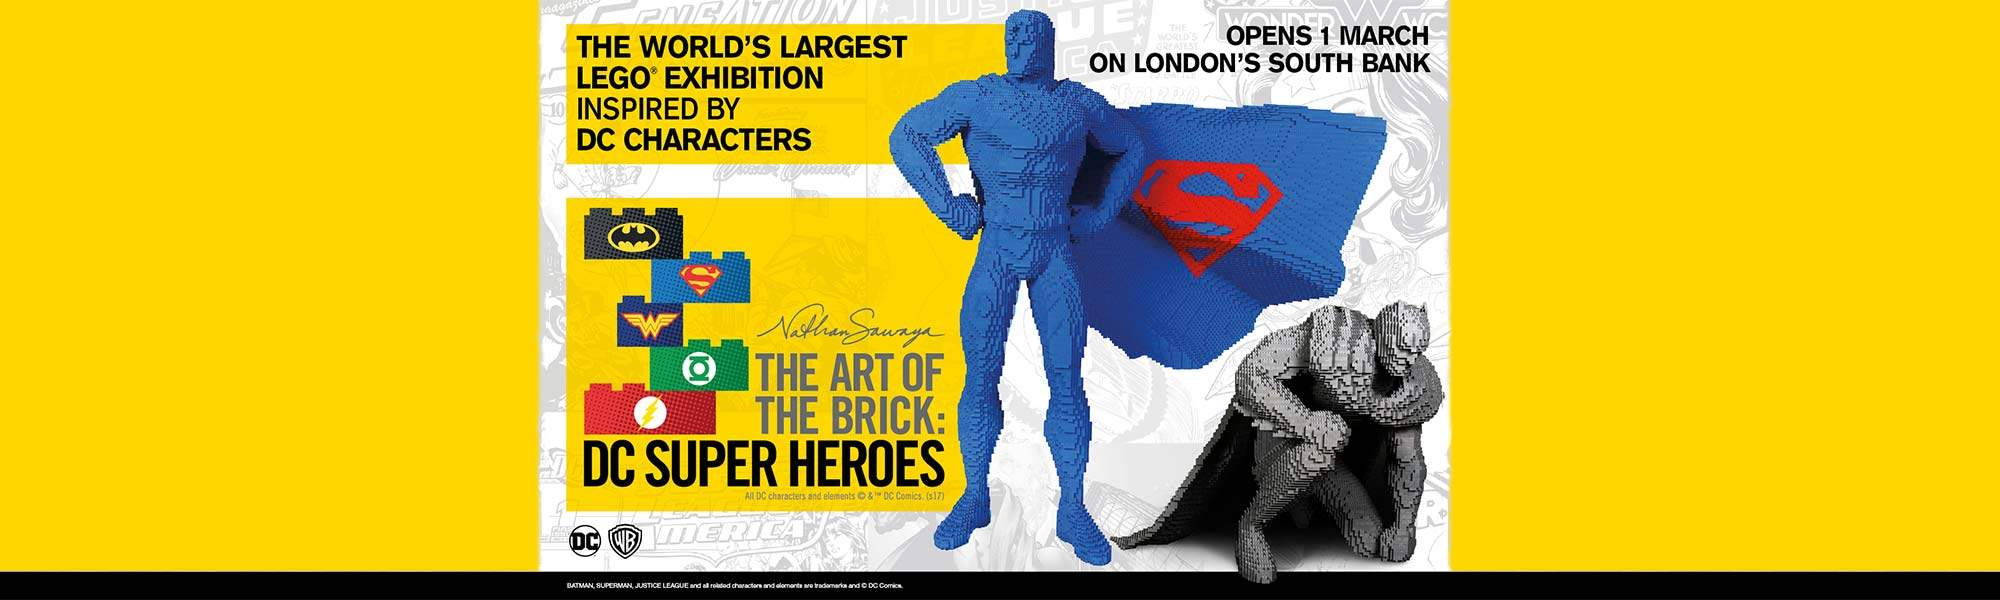 Little Bird The Art of the Brick: DC Super Heroes - Opens 1st March, Book Now!